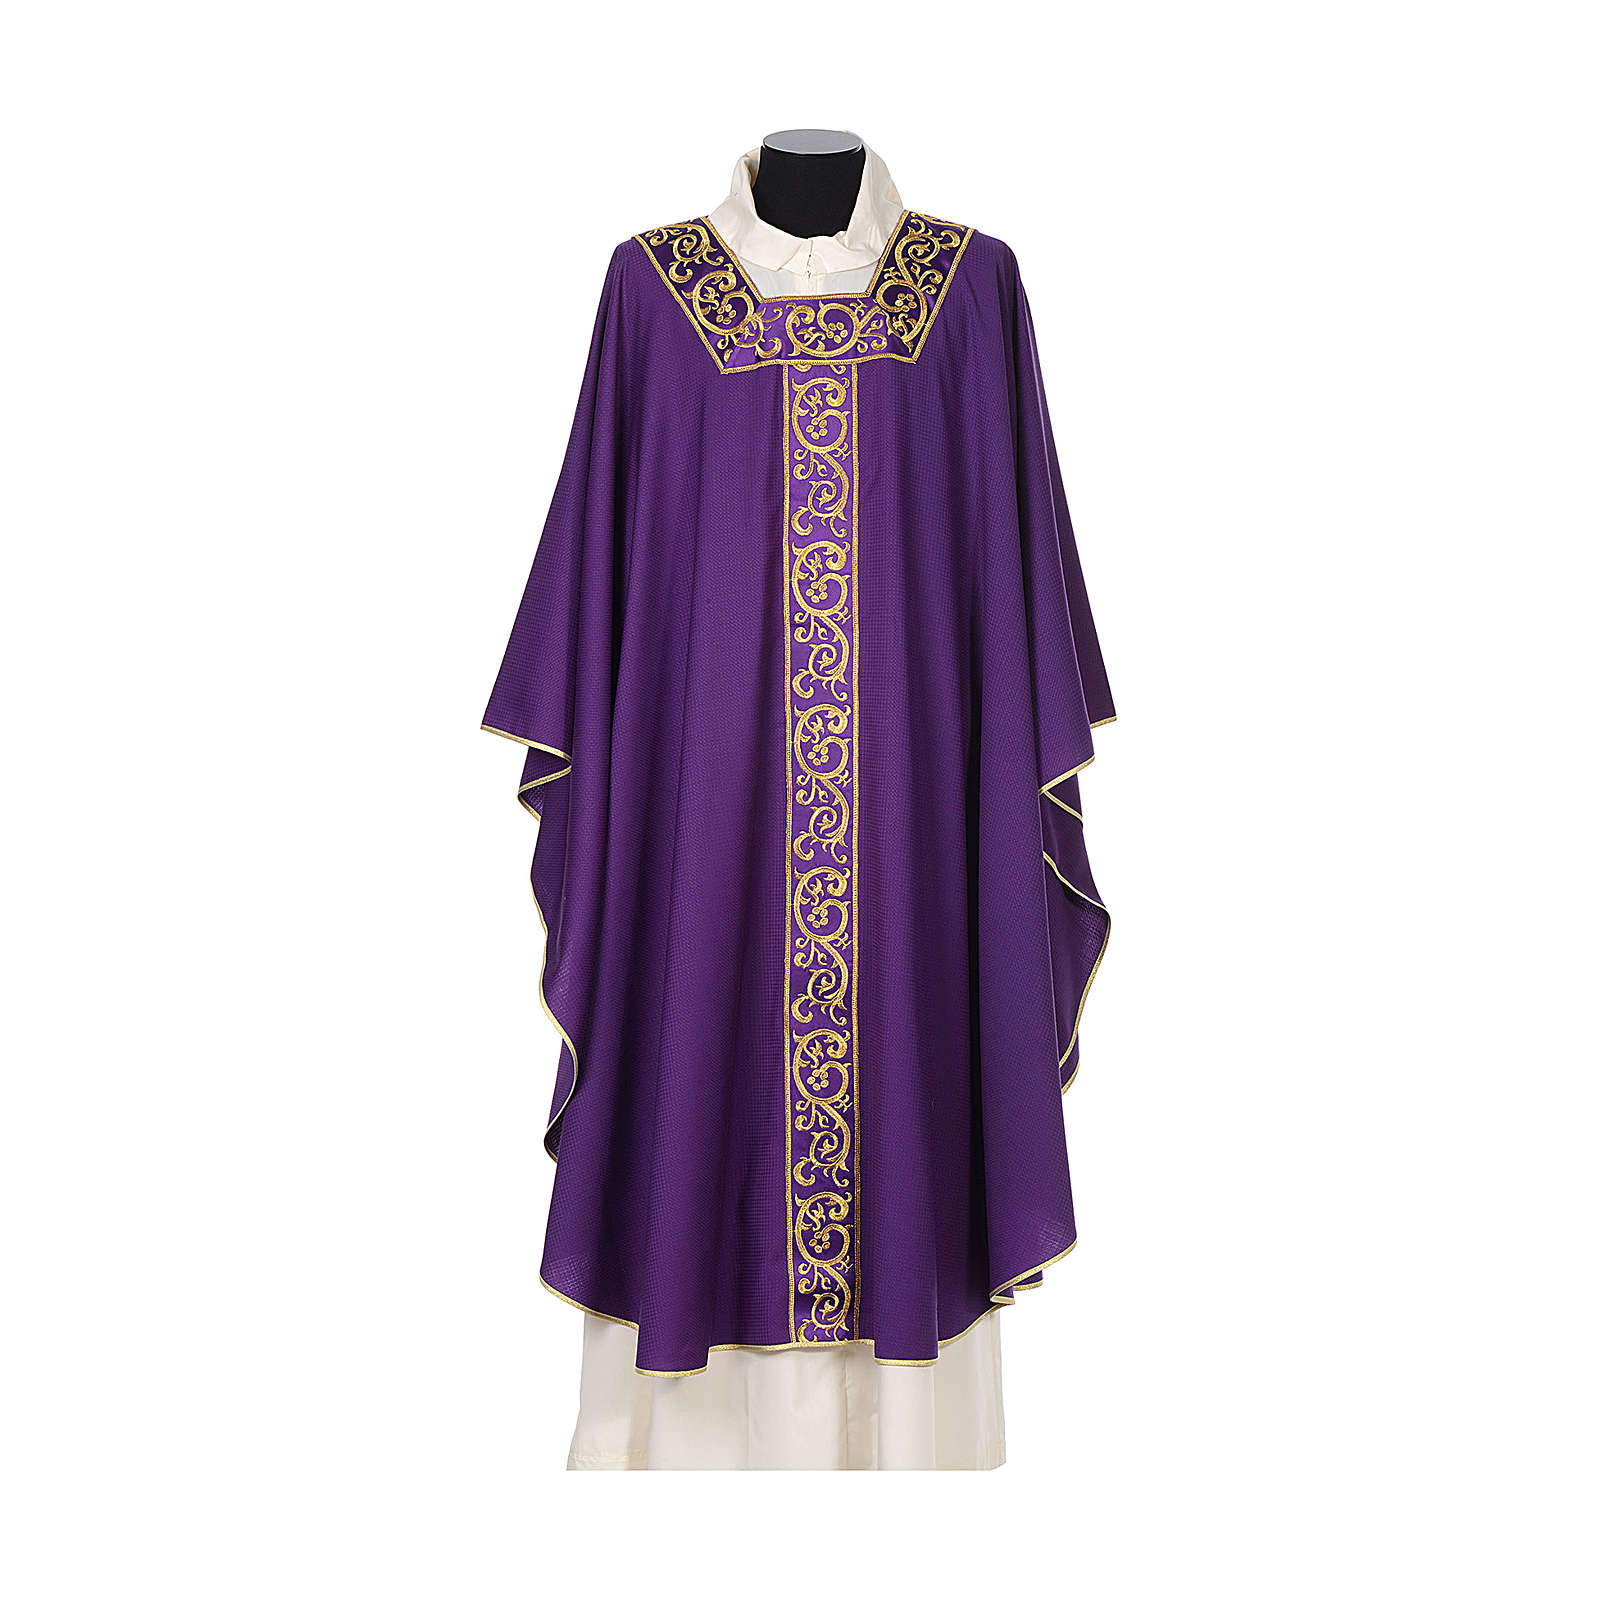 Catholic Chasuble 100% wool textured fabric with decorated neckline and gallon 4